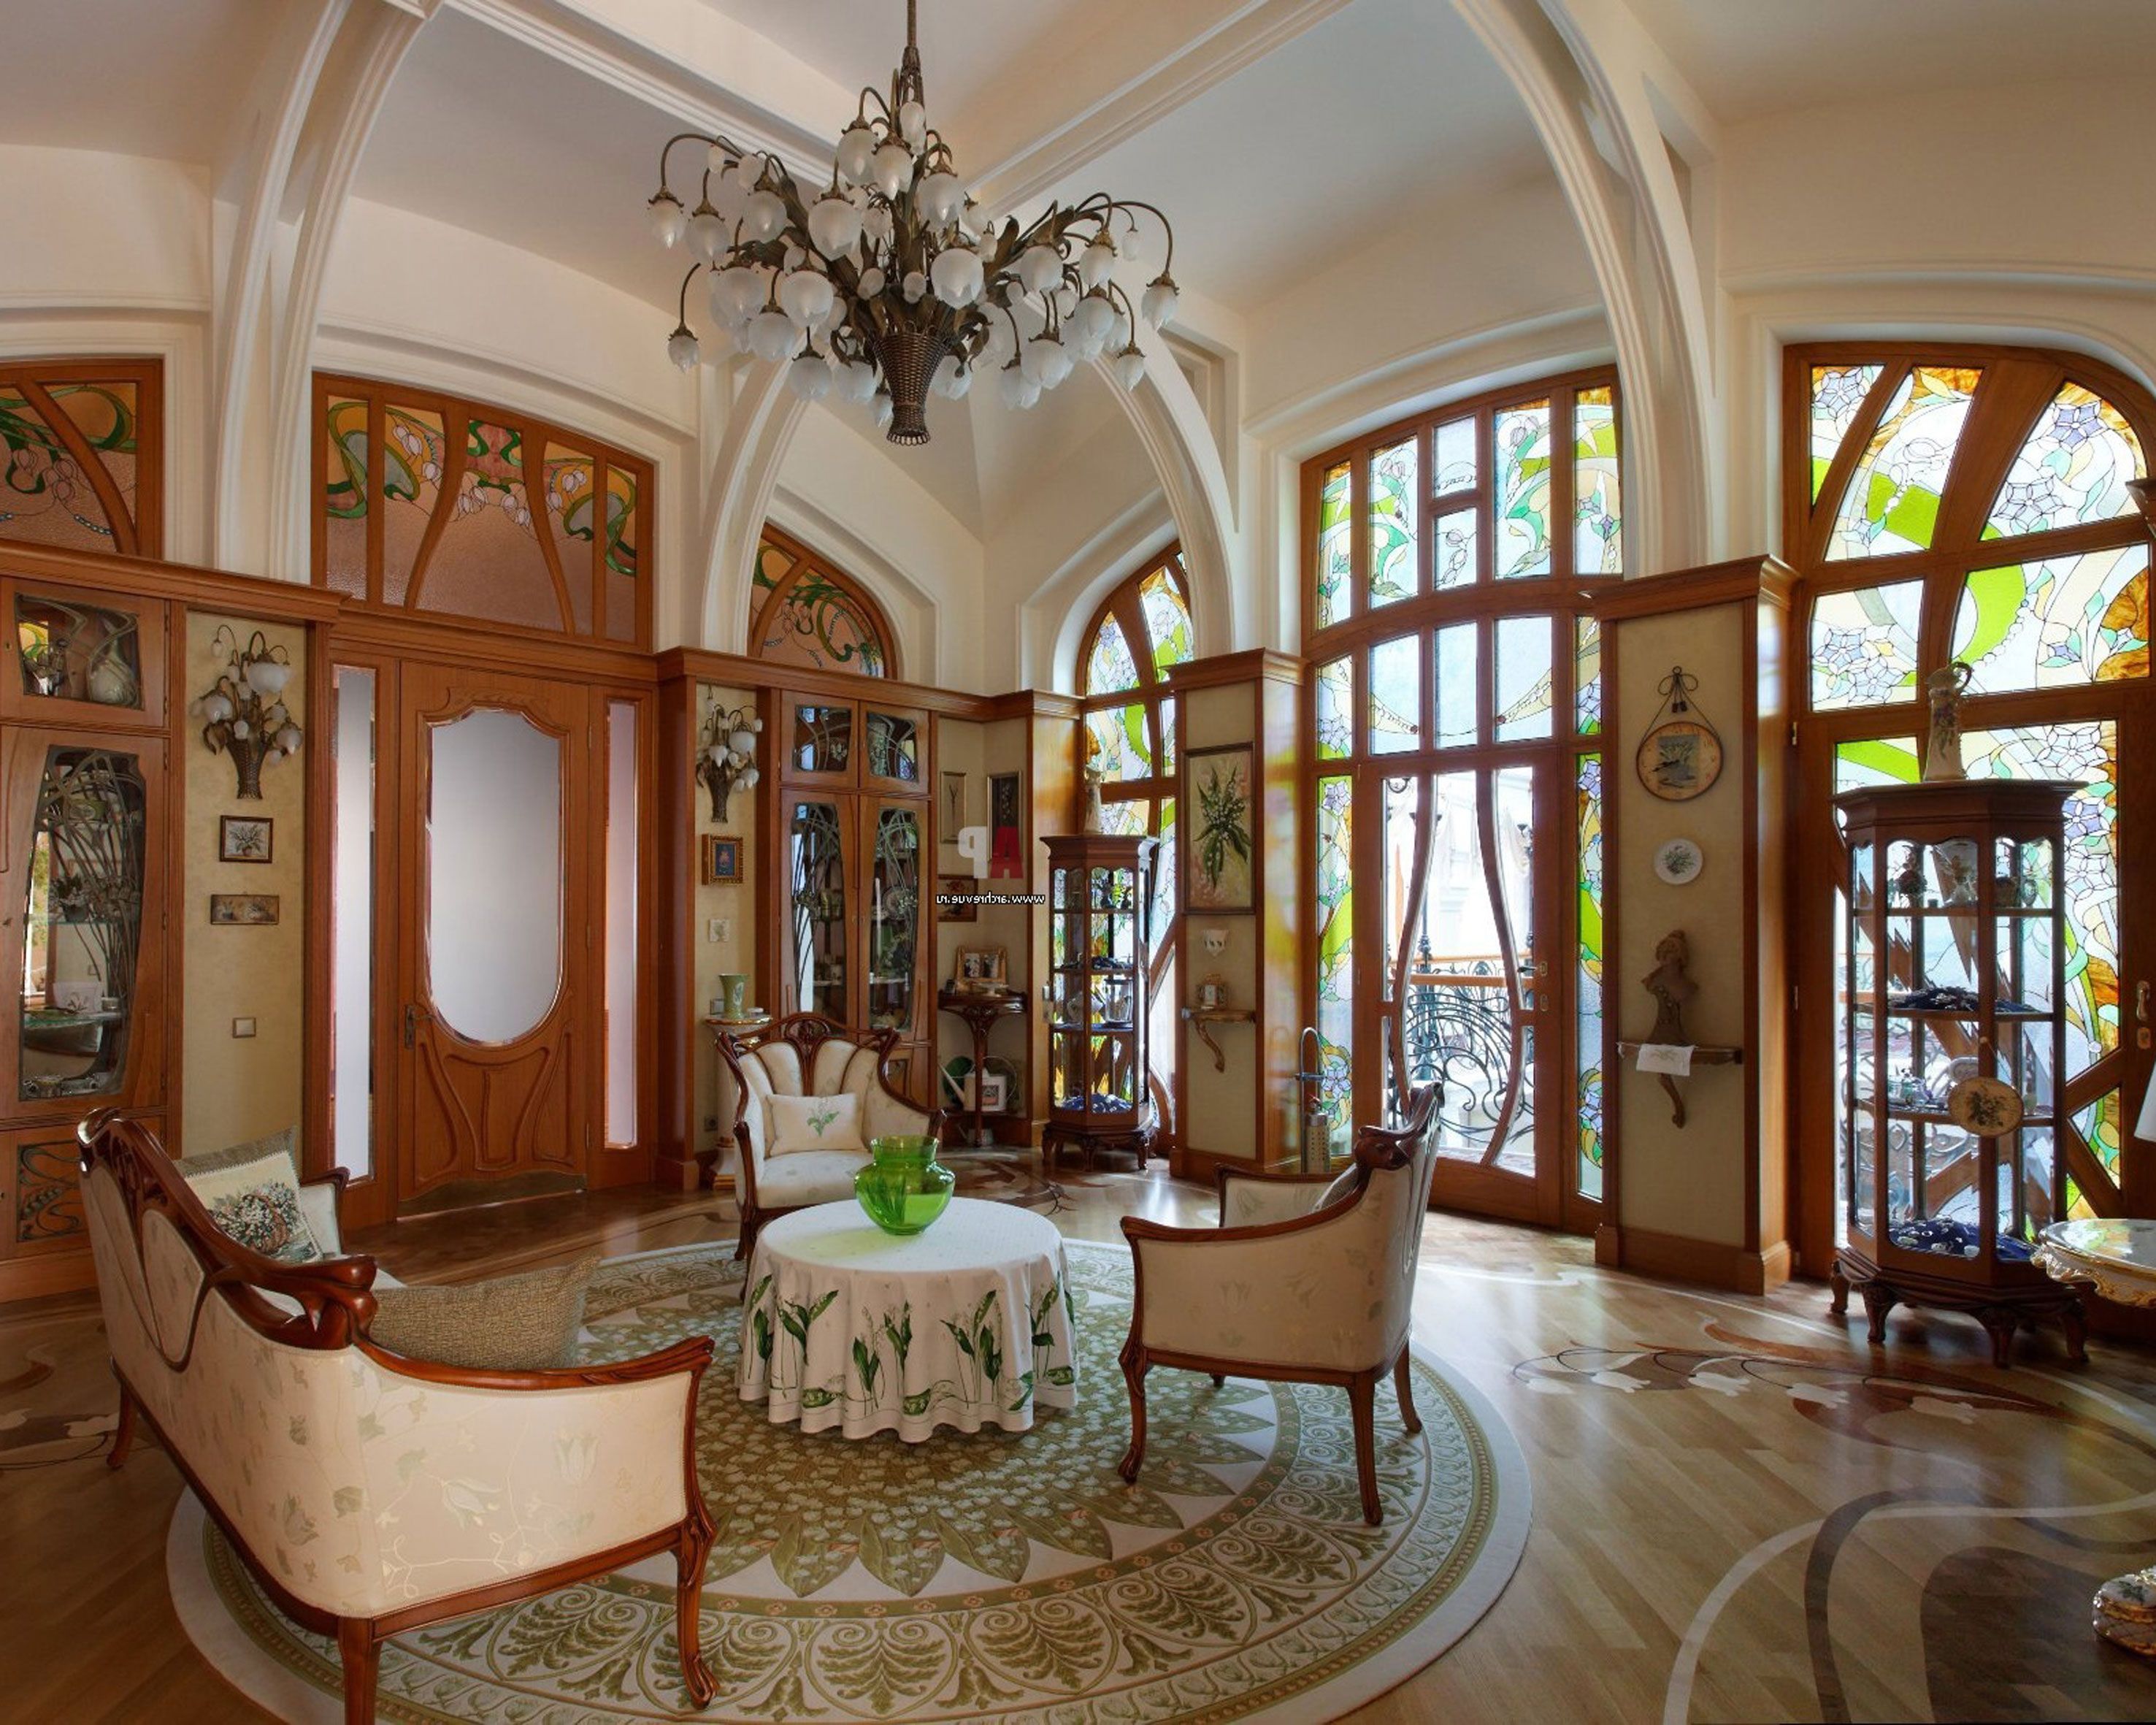 Beau Art Nouveau Interior Design With Its Style Decor